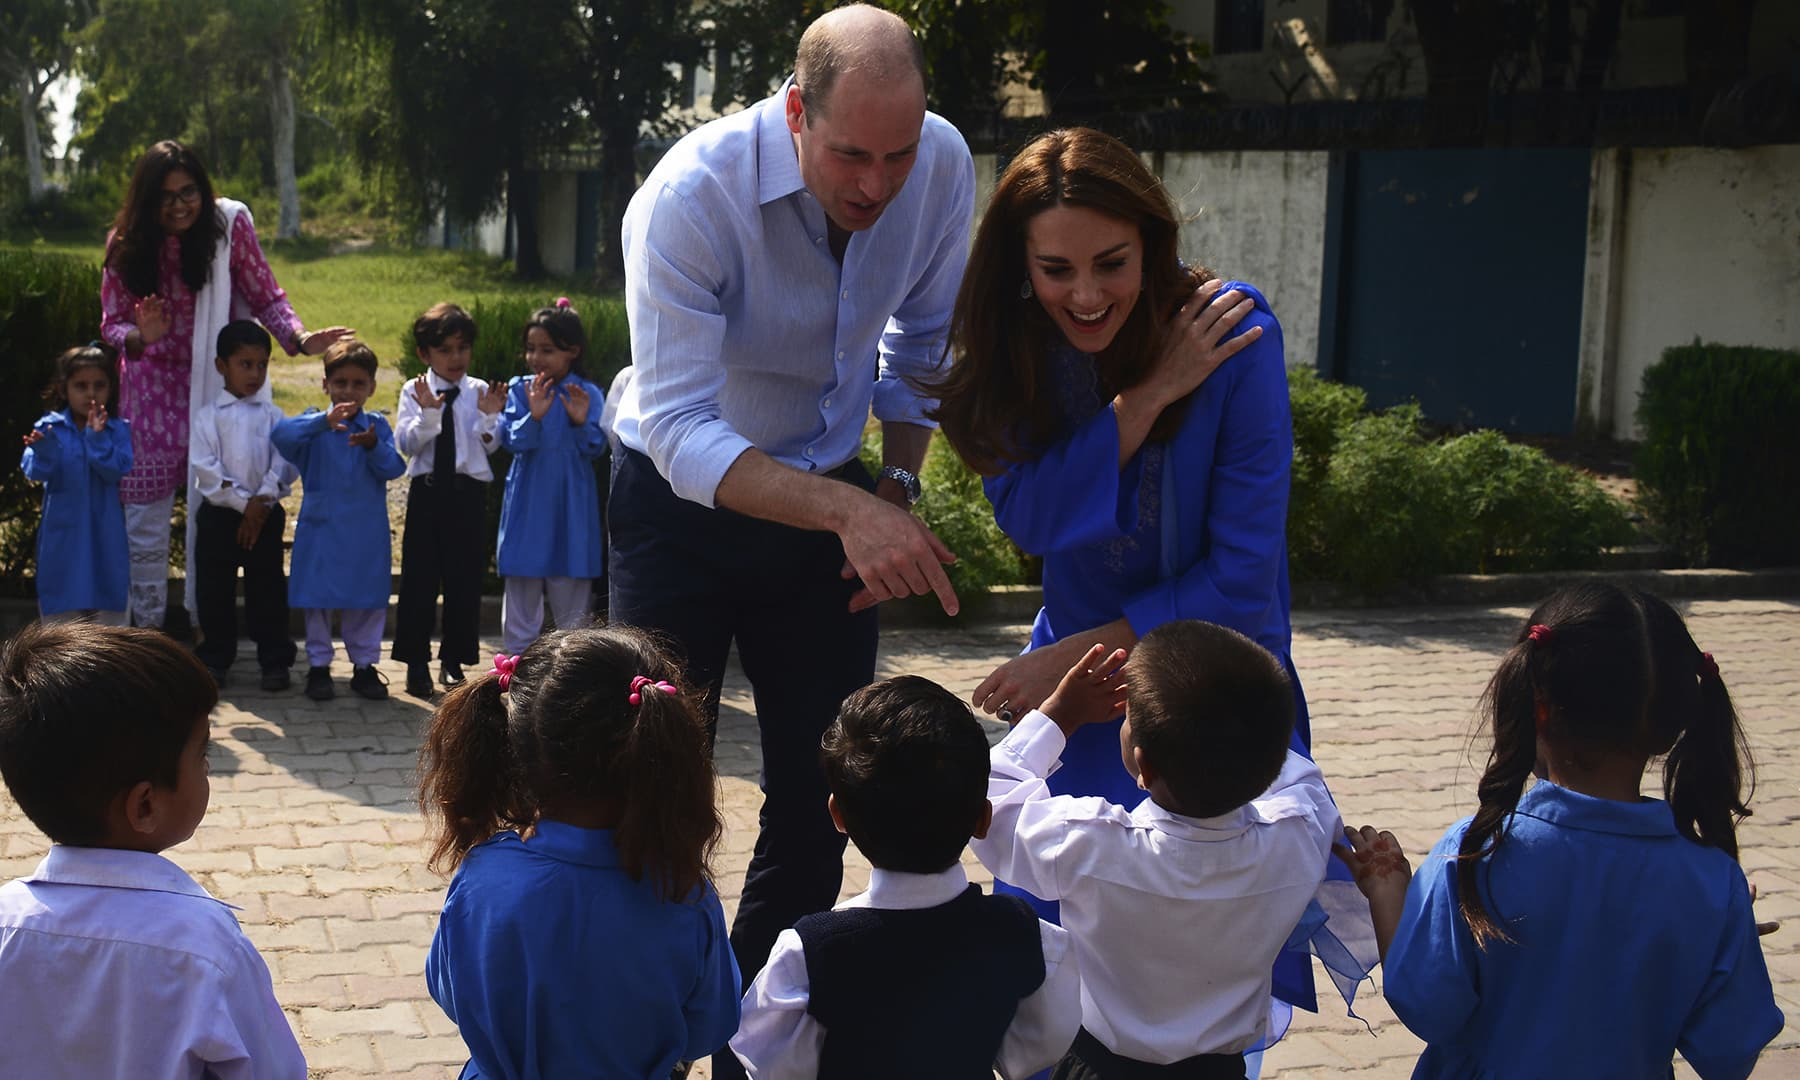 Prince William and his wife Kate interact with students during their visit to a school outside Islamabad ob Tuesday. — AP